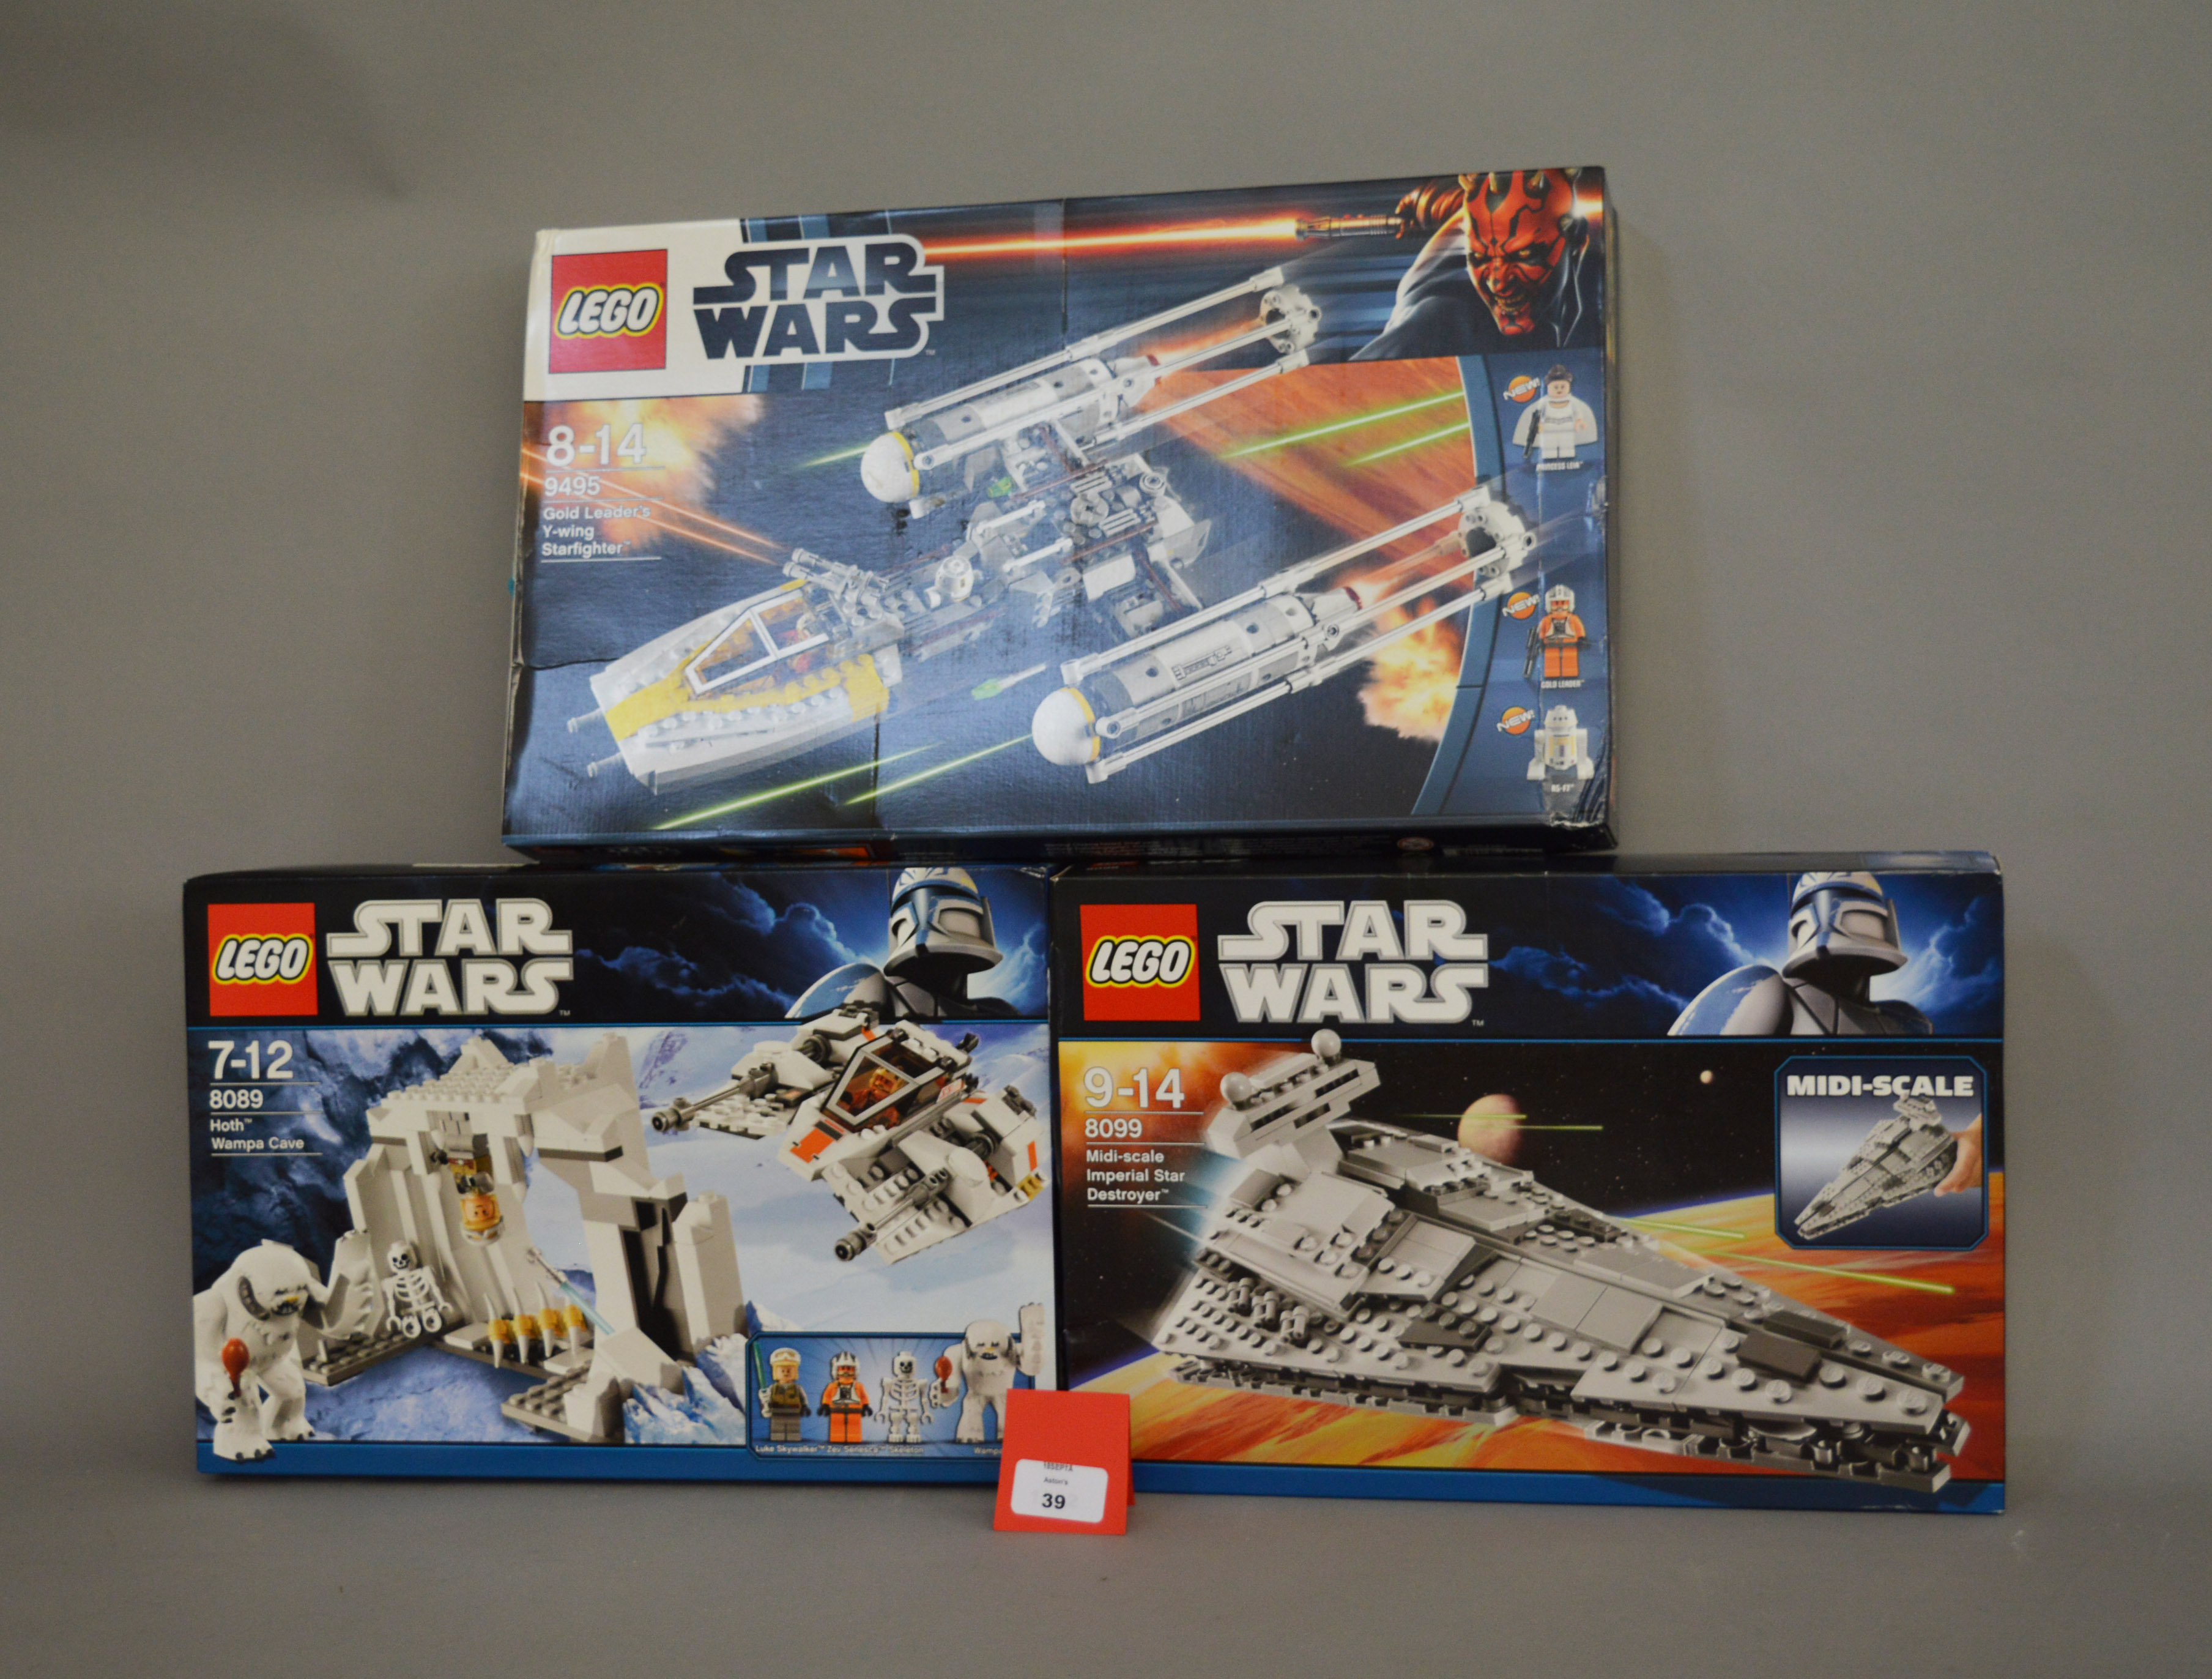 Lot 39 - Three Lego Star Wars sets: 9495 Gold Leader's Y-wing Starfighter; 8089 Hoth Wampa Cave;